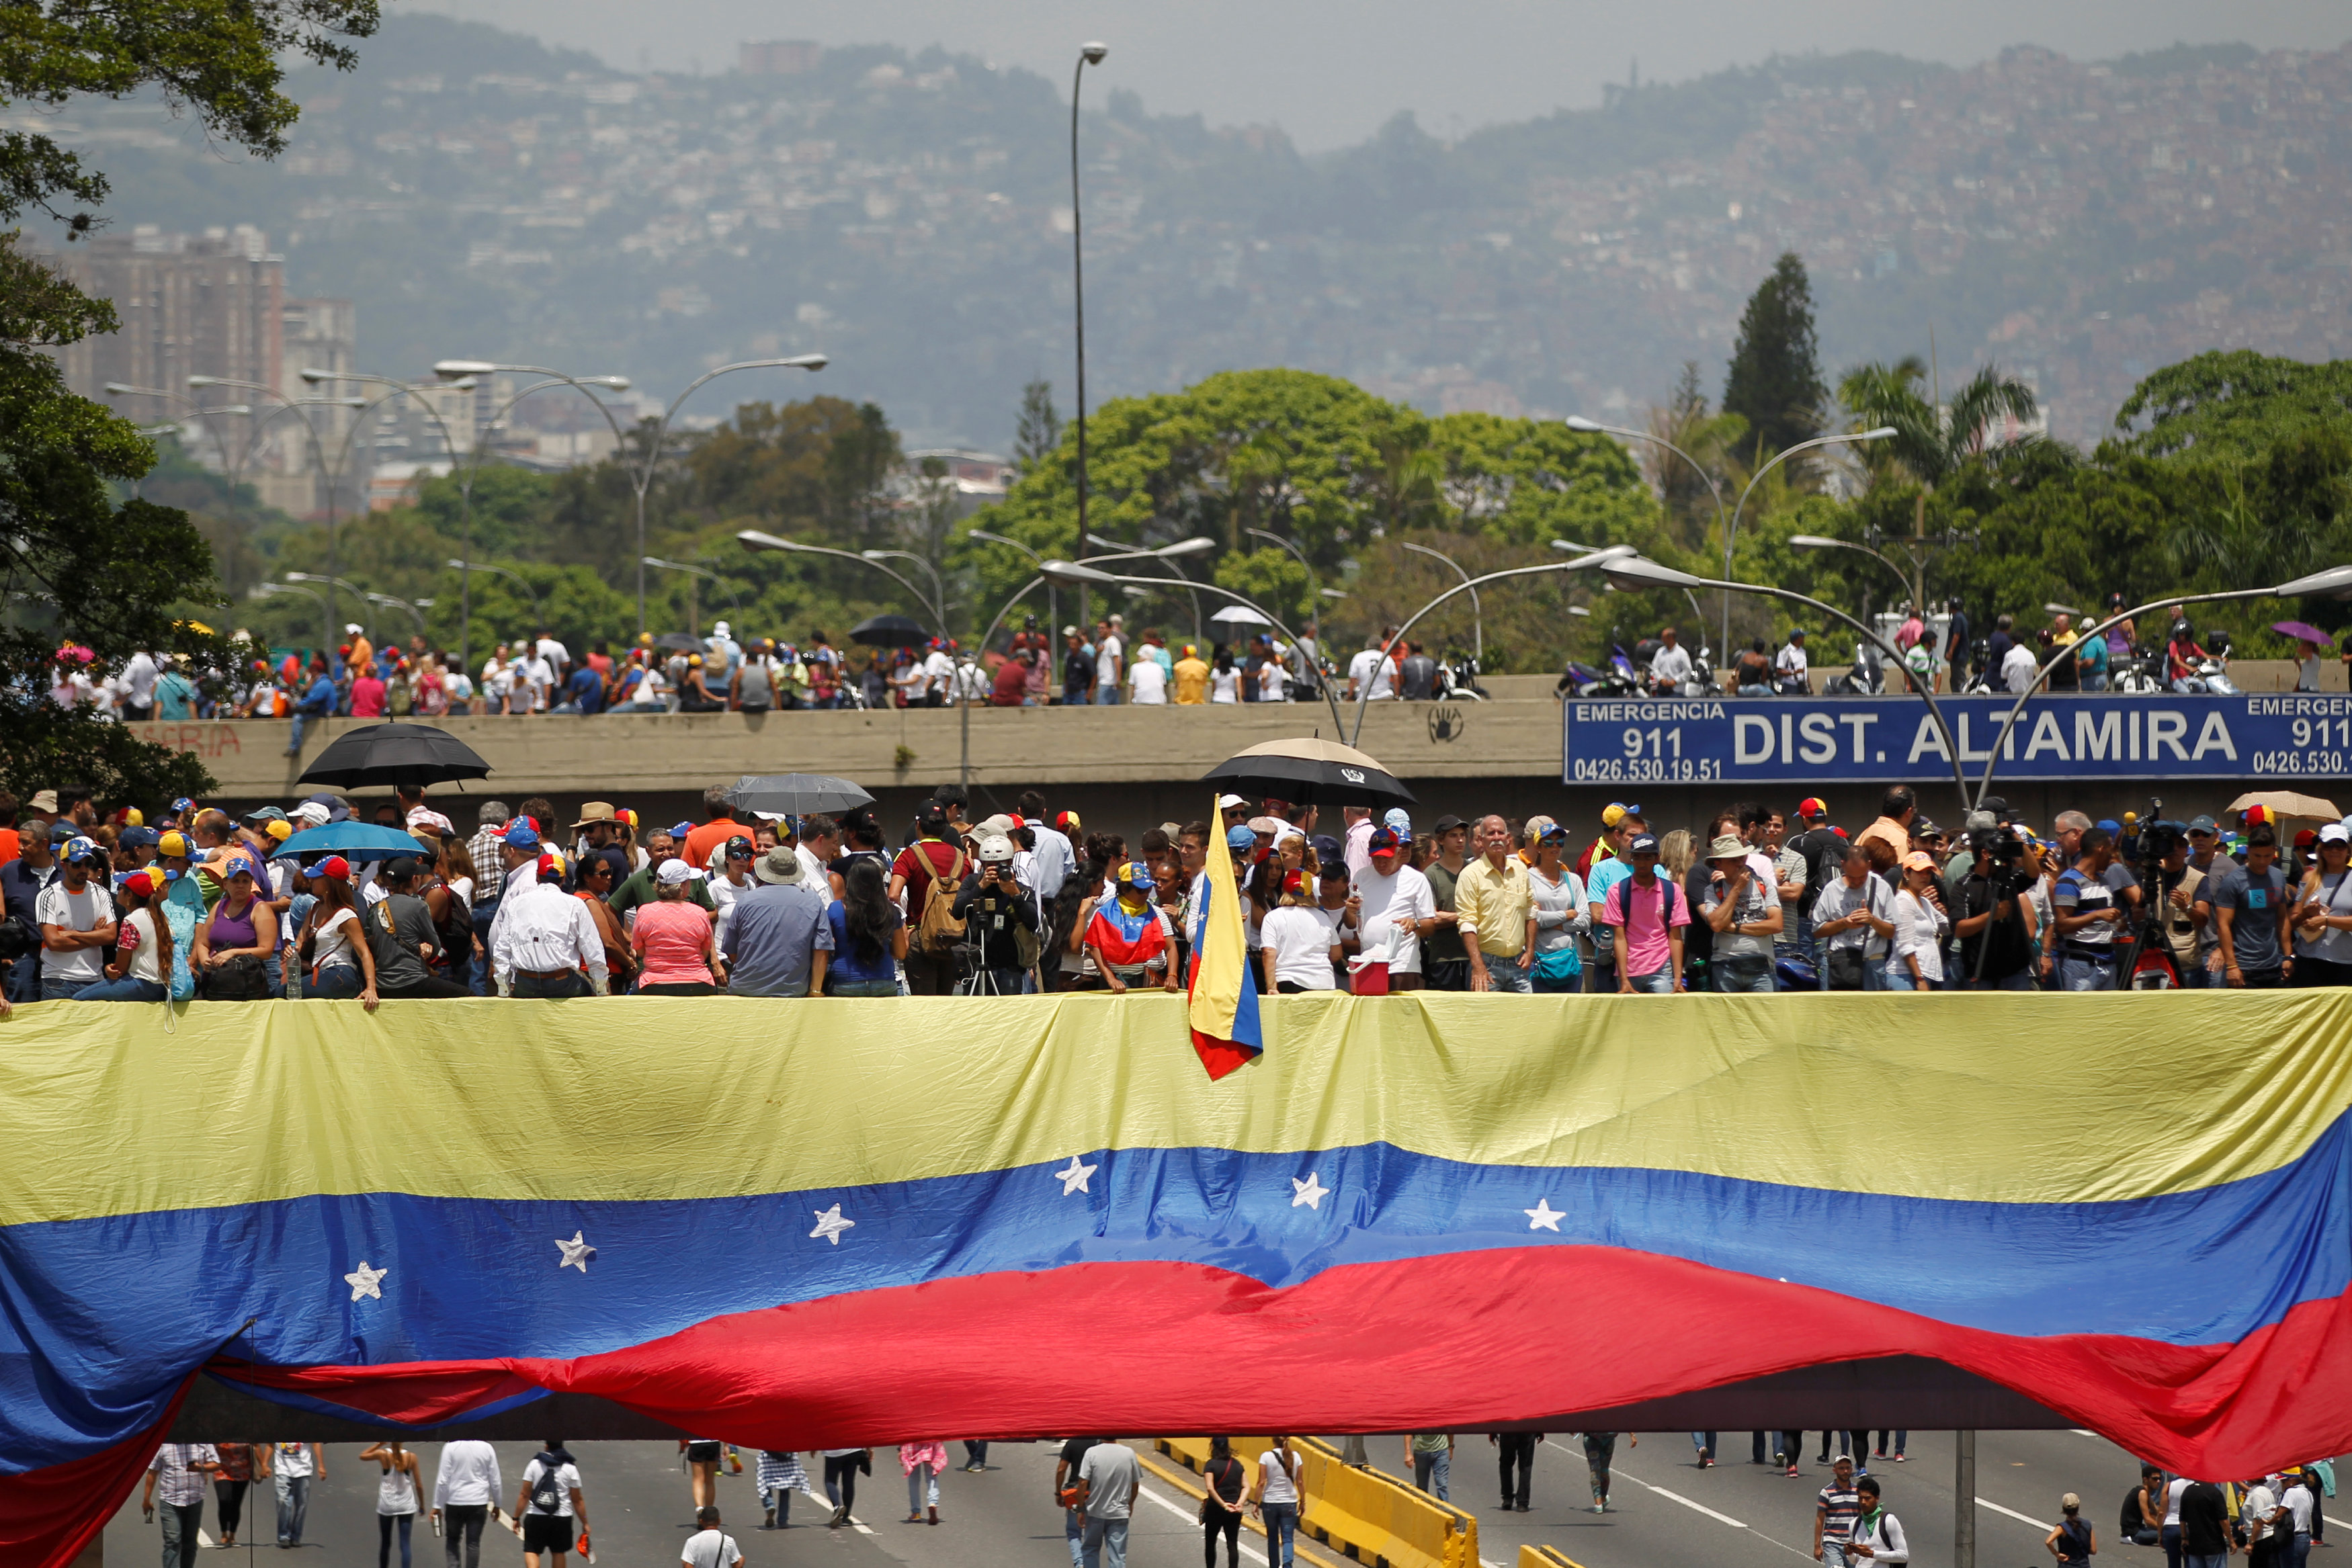 Protestors attend a rally against Venezuela's Socialist leader Nicolas Maduro in Caracas, Venezuela on April 24, 2017. (REUTERS/Christian Veron)